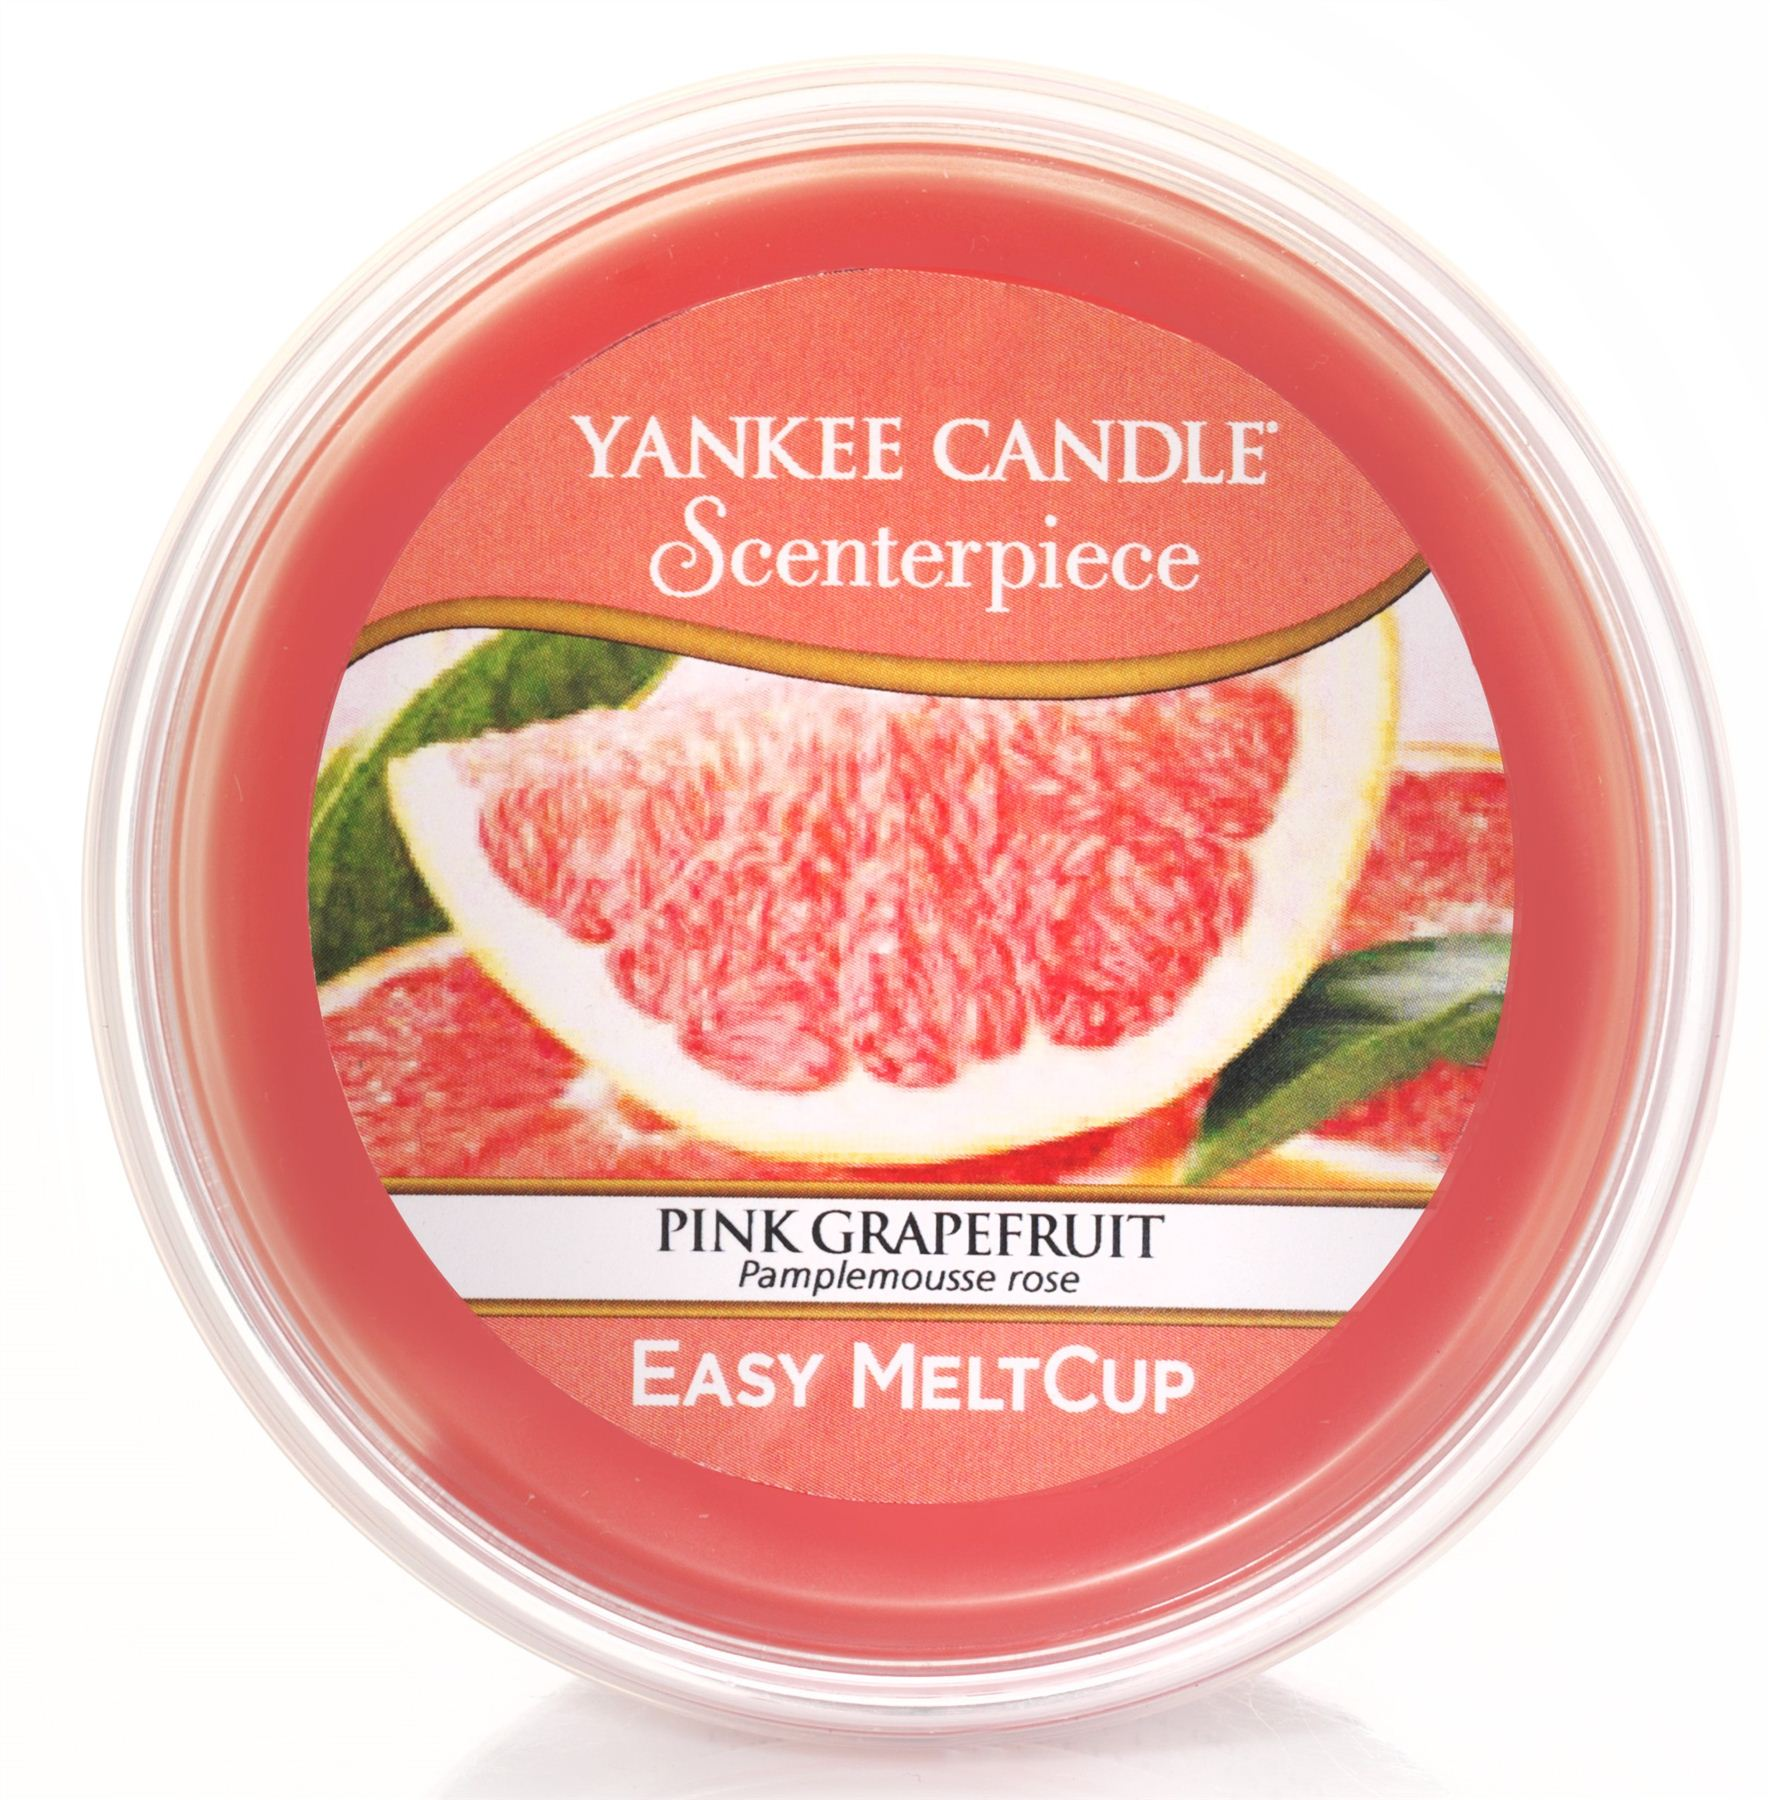 Yankee candle scenterpiece easy melt cups various